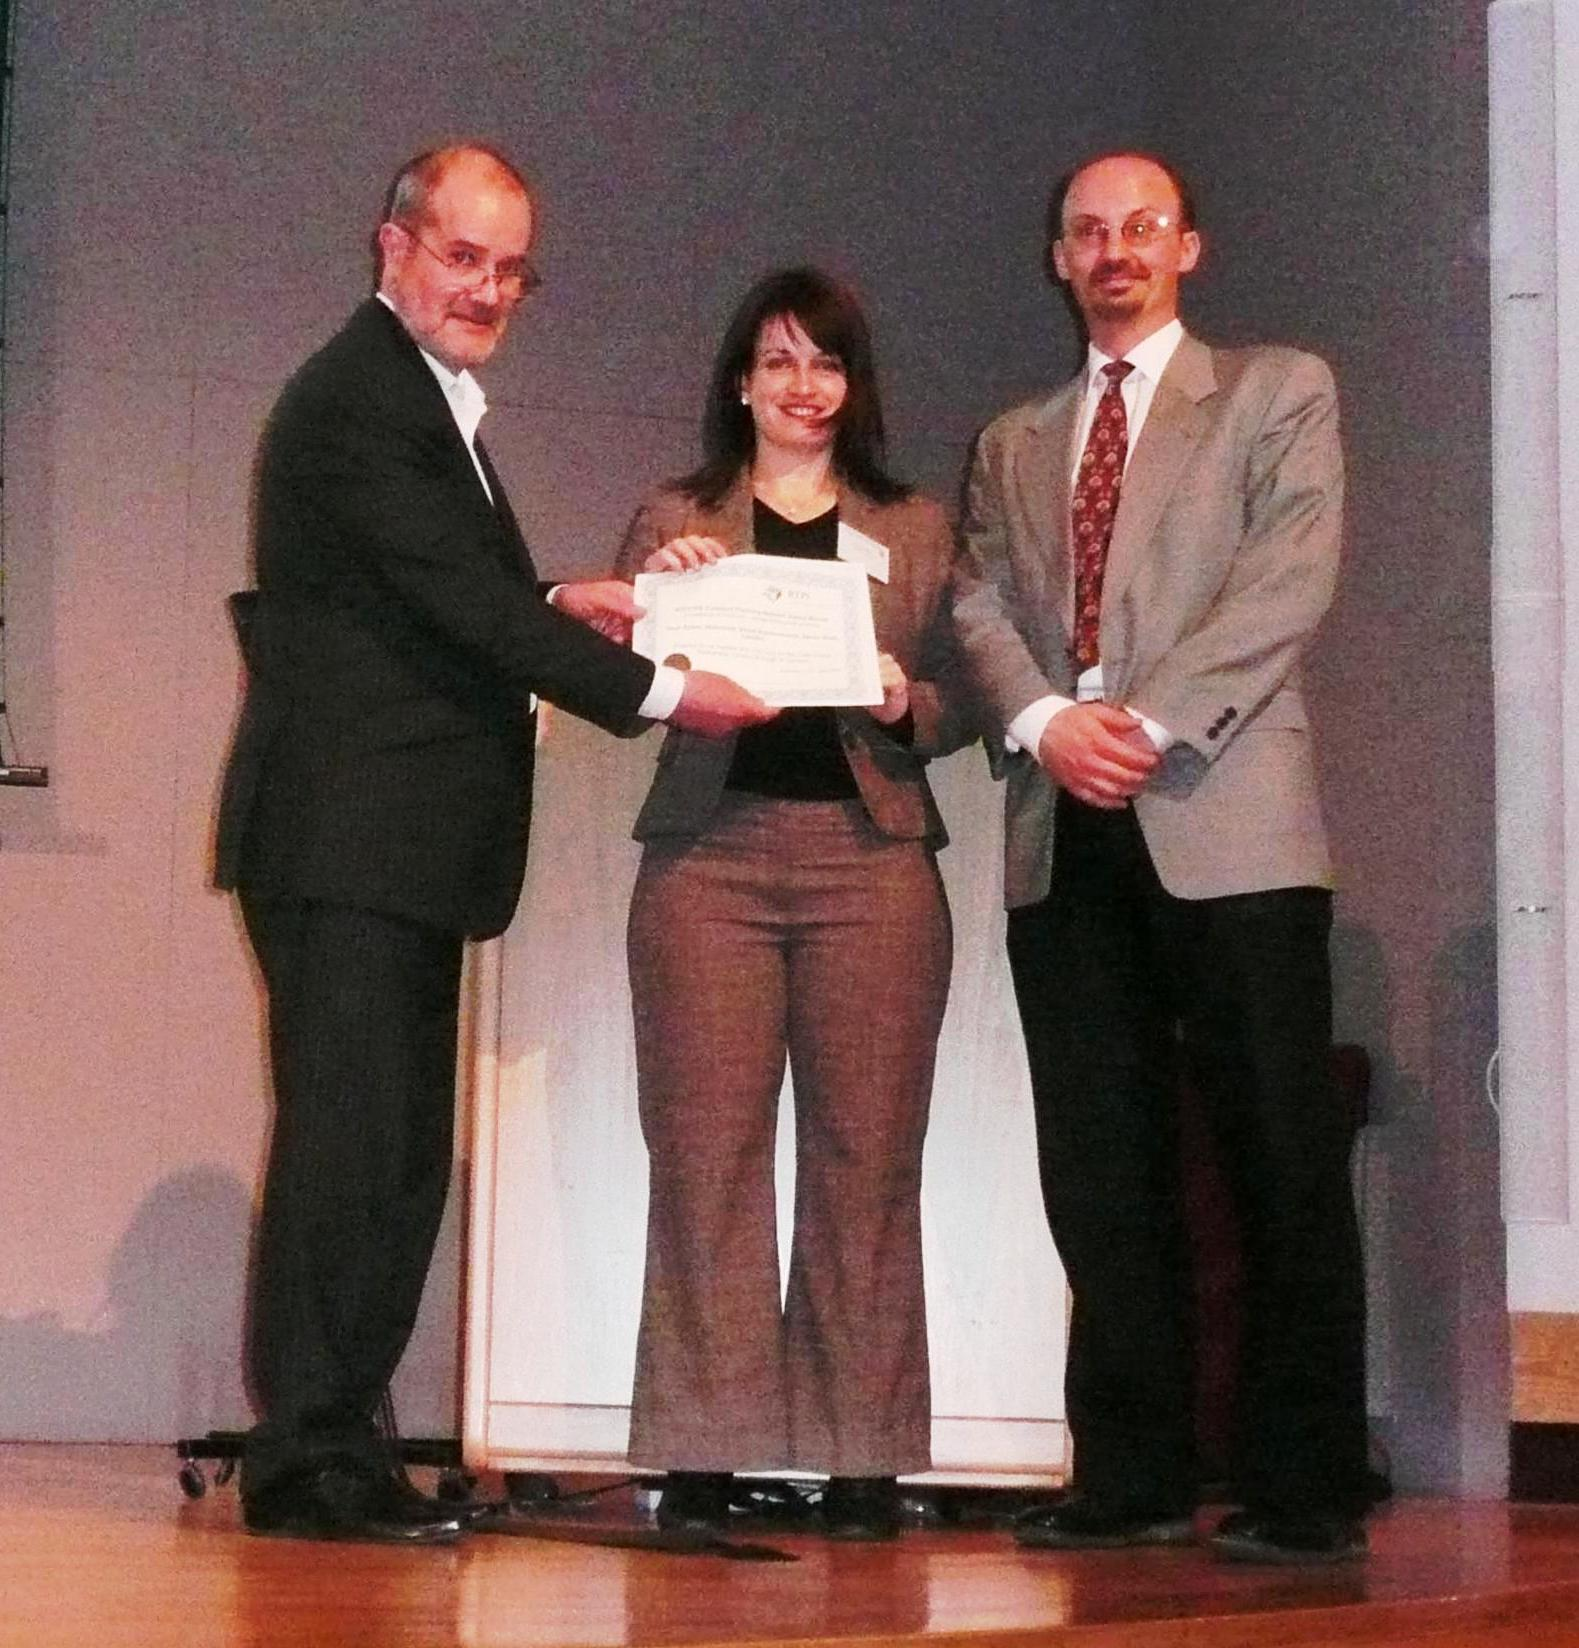 2008 RTPI Award for Monmouth Street Improvements, collected by Camden's Liz Halstead and Tim Long.